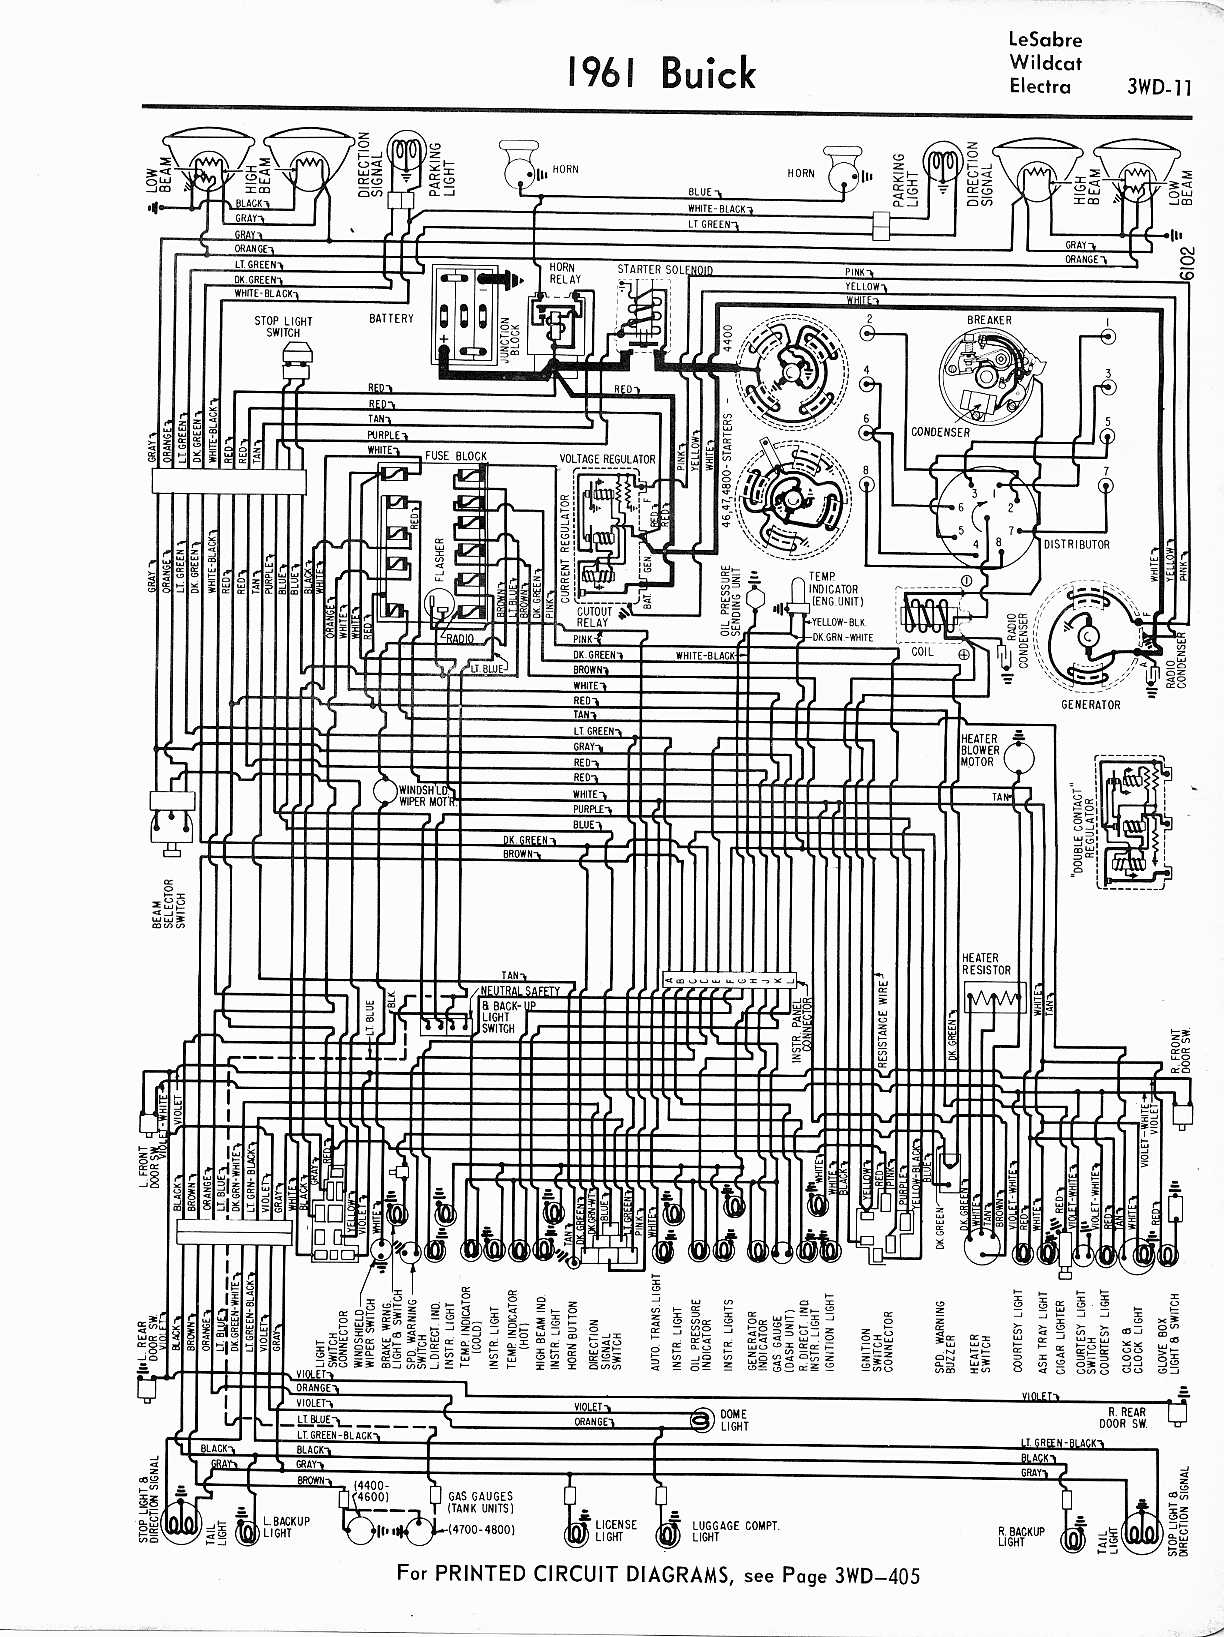 68 Buick Fuse Diagram Wiring Schematic Free For You 98 Corvette Diagrams 1957 1965 Rh Oldcarmanualproject Com 2007 Rv